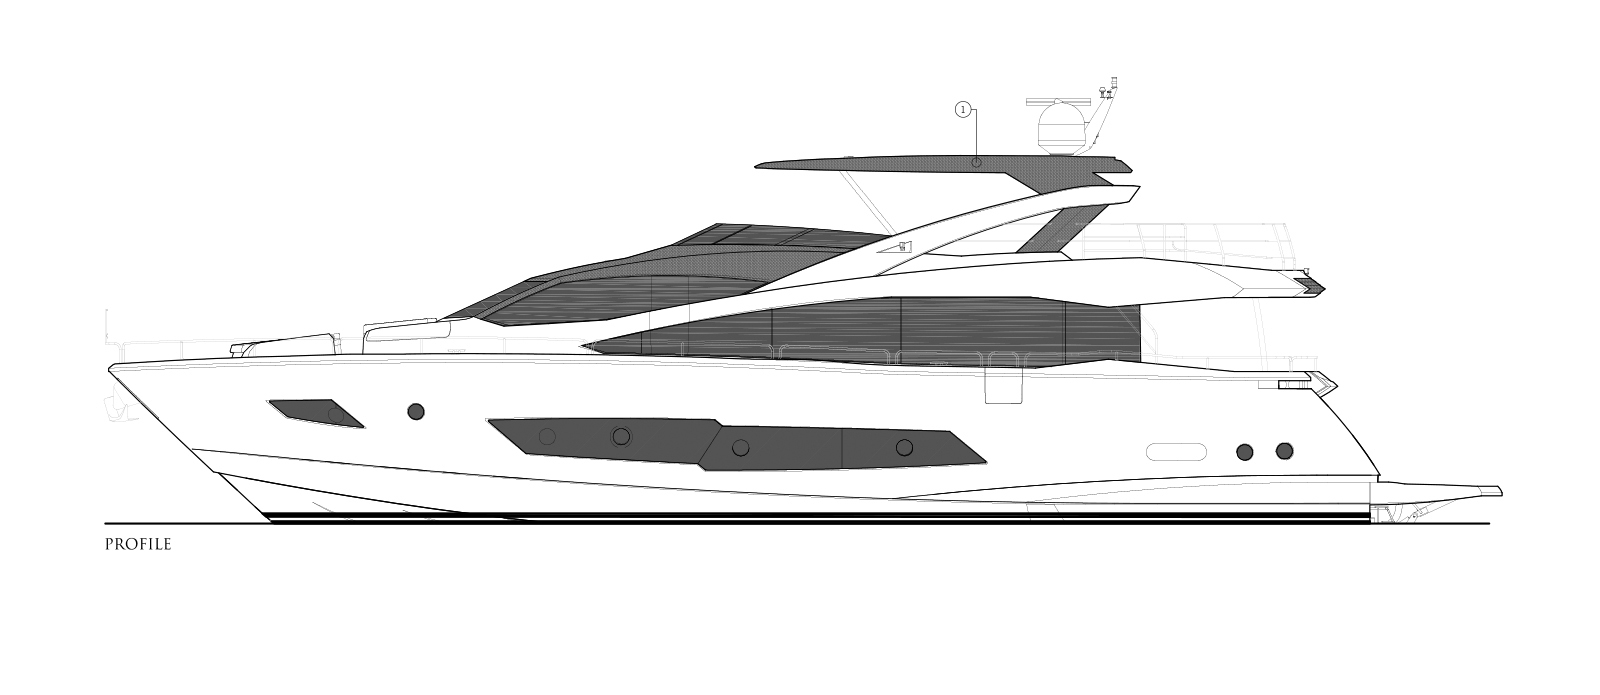 Sunseeker 86 Yacht - Side Profile - Layout